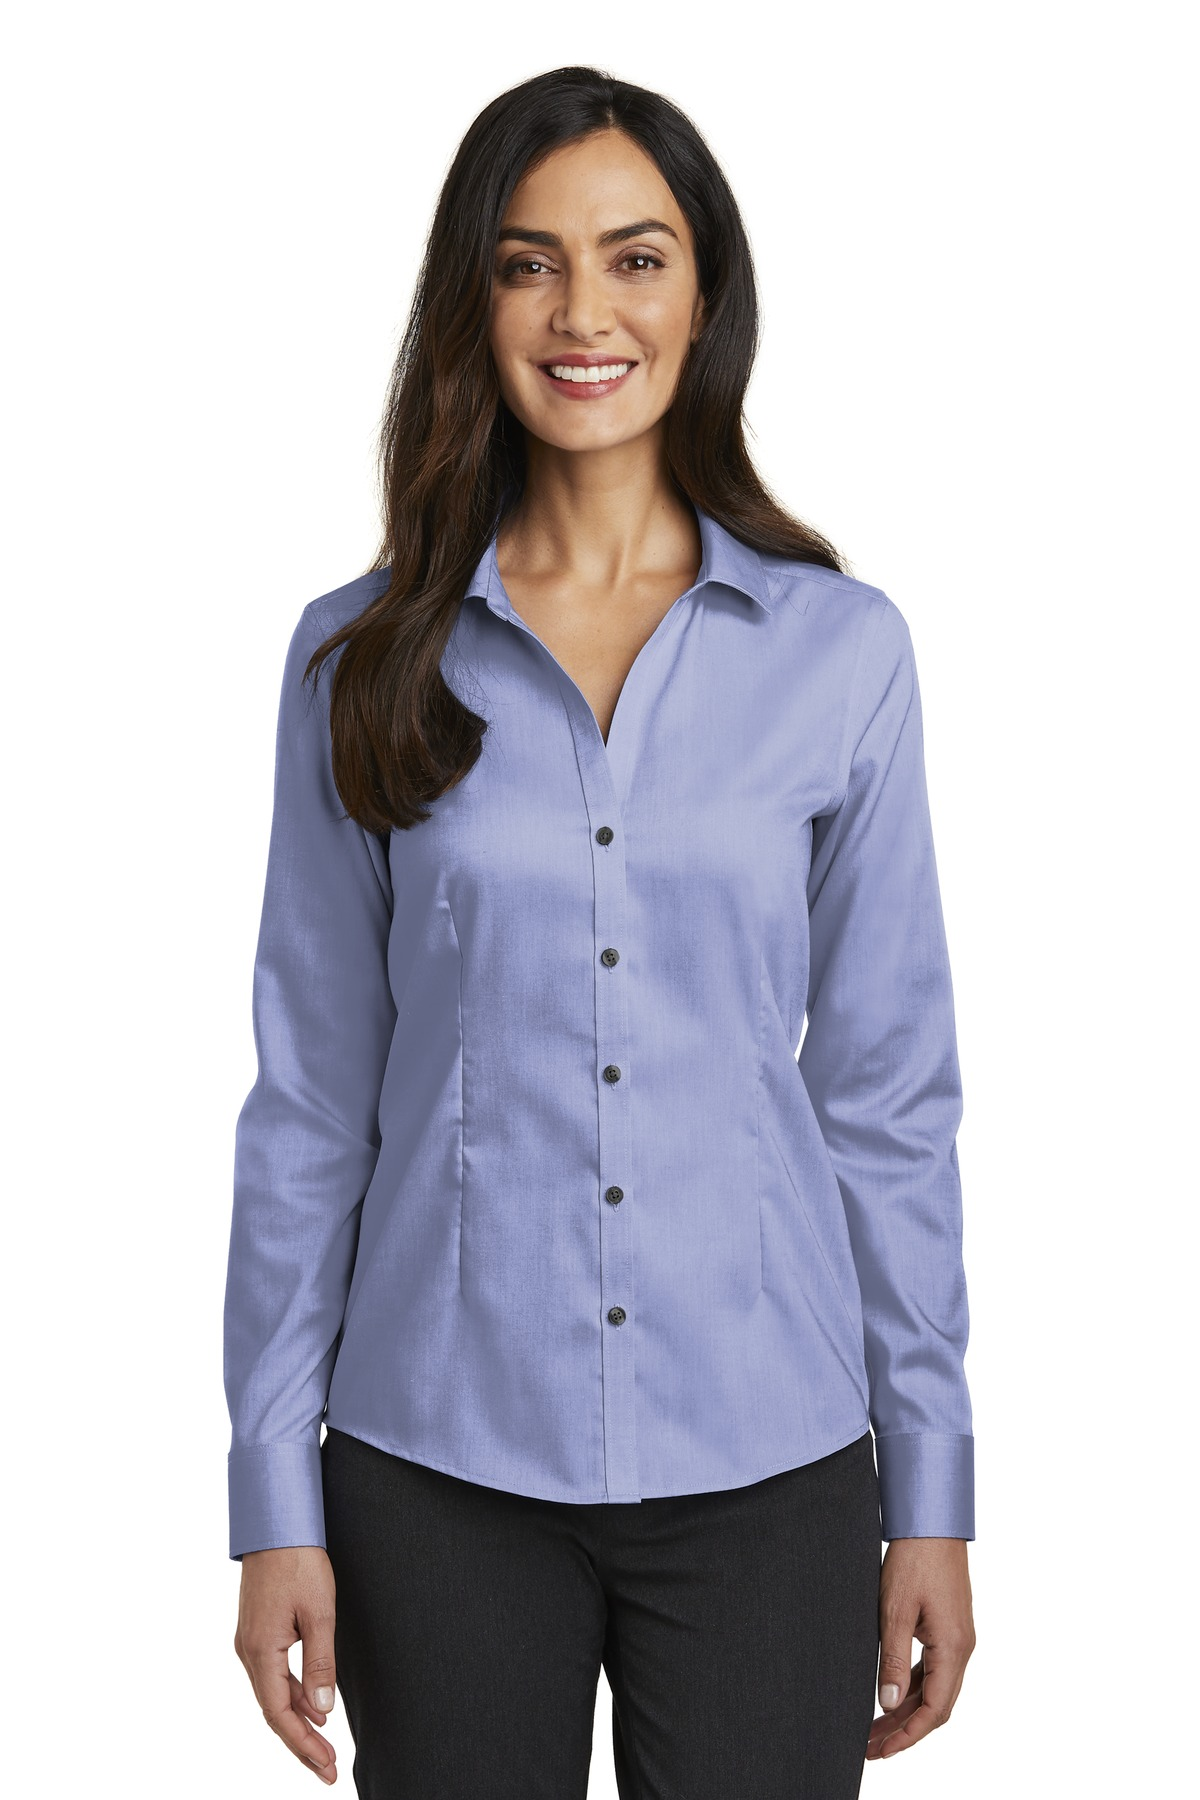 Red House ®   Ladies Pinpoint Oxford Non-Iron Shirt. RH250 - Vintage Navy